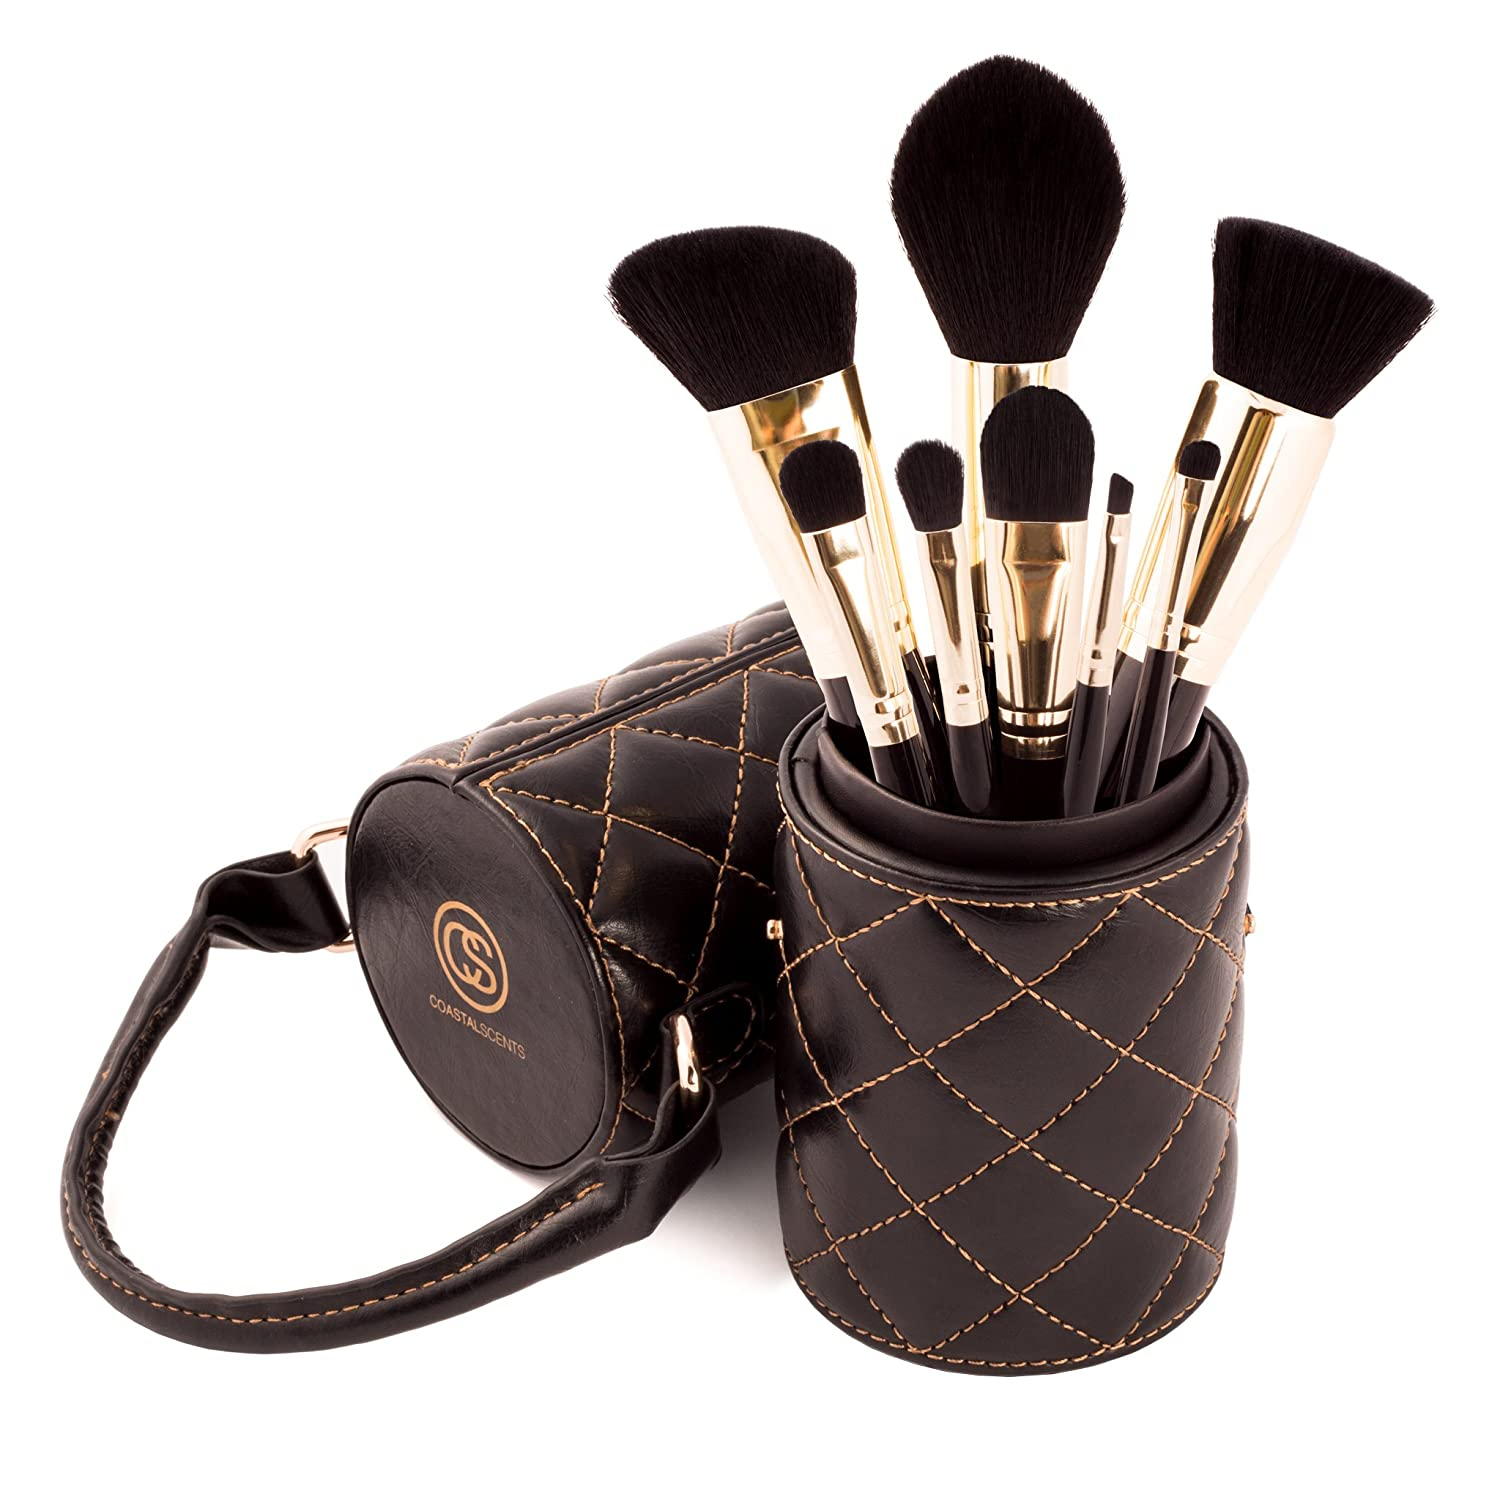 Coastal Scents Majestic 8-piece Makeup Brush Set with Carrying Case